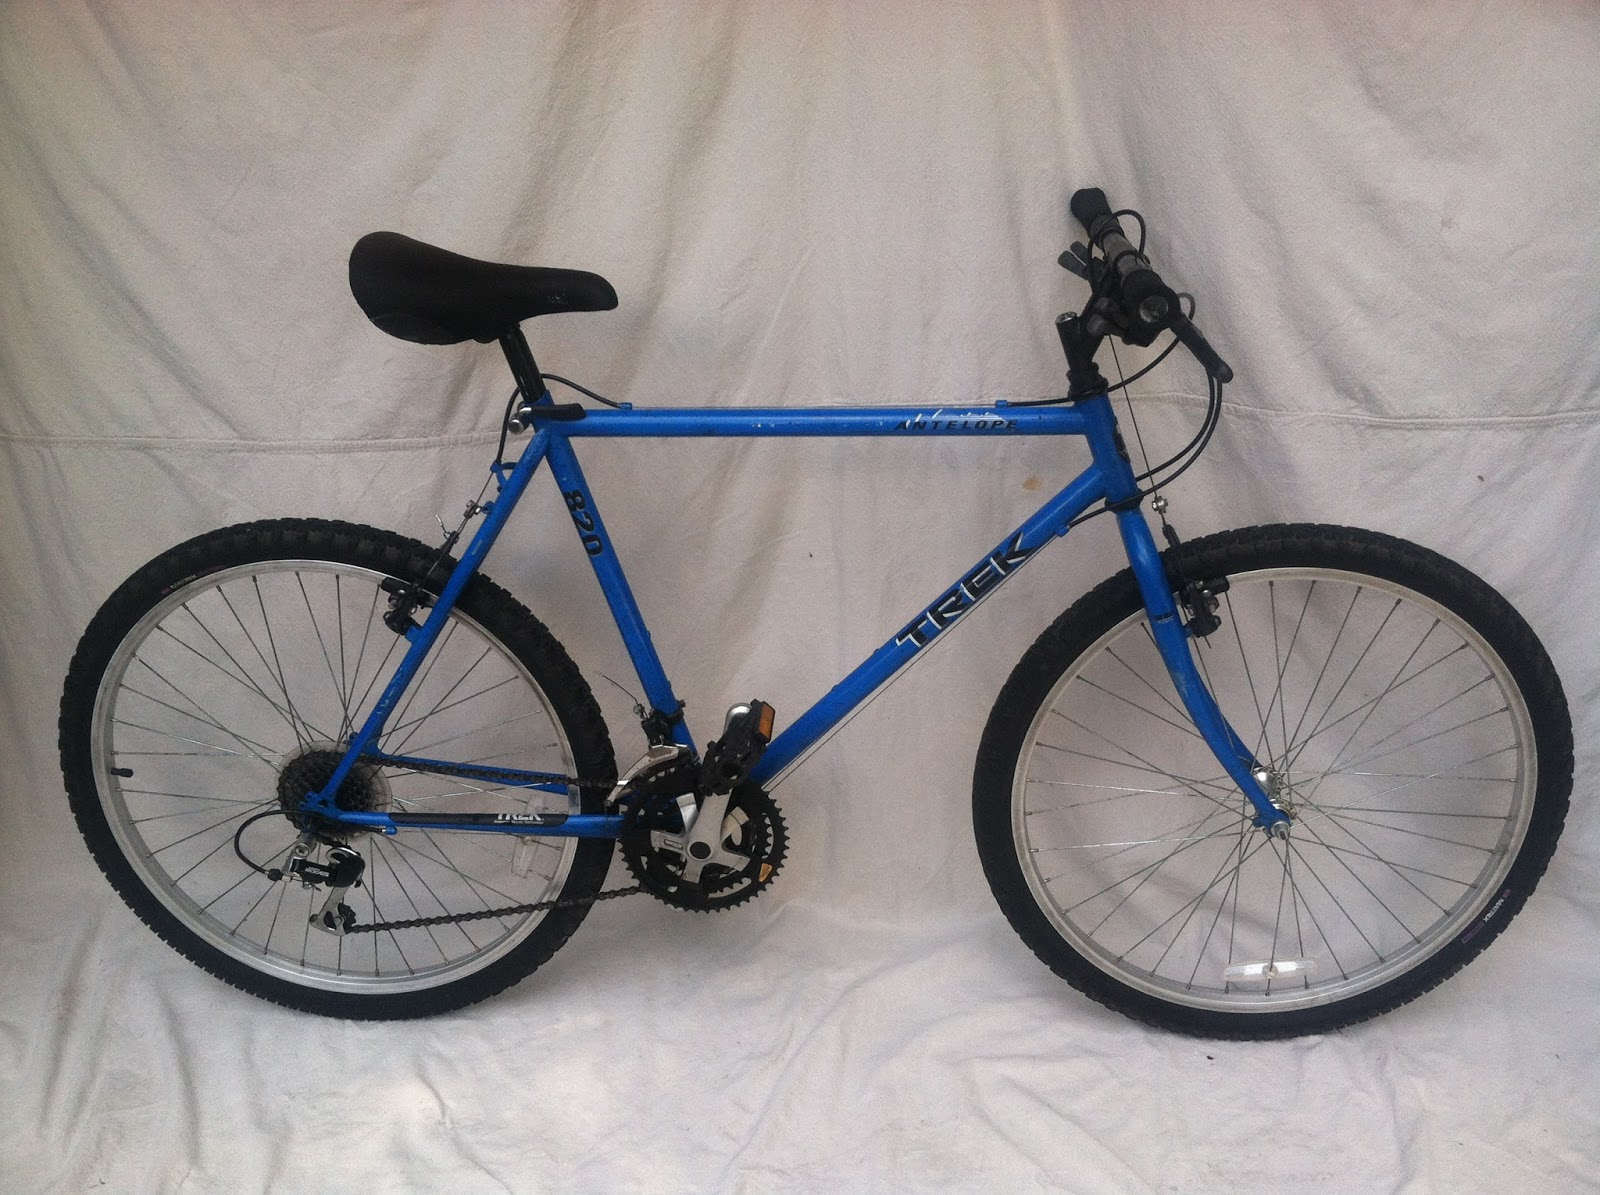 1992 Trek 820 Antelope Mountain Bike Electric Blue With Black Splash